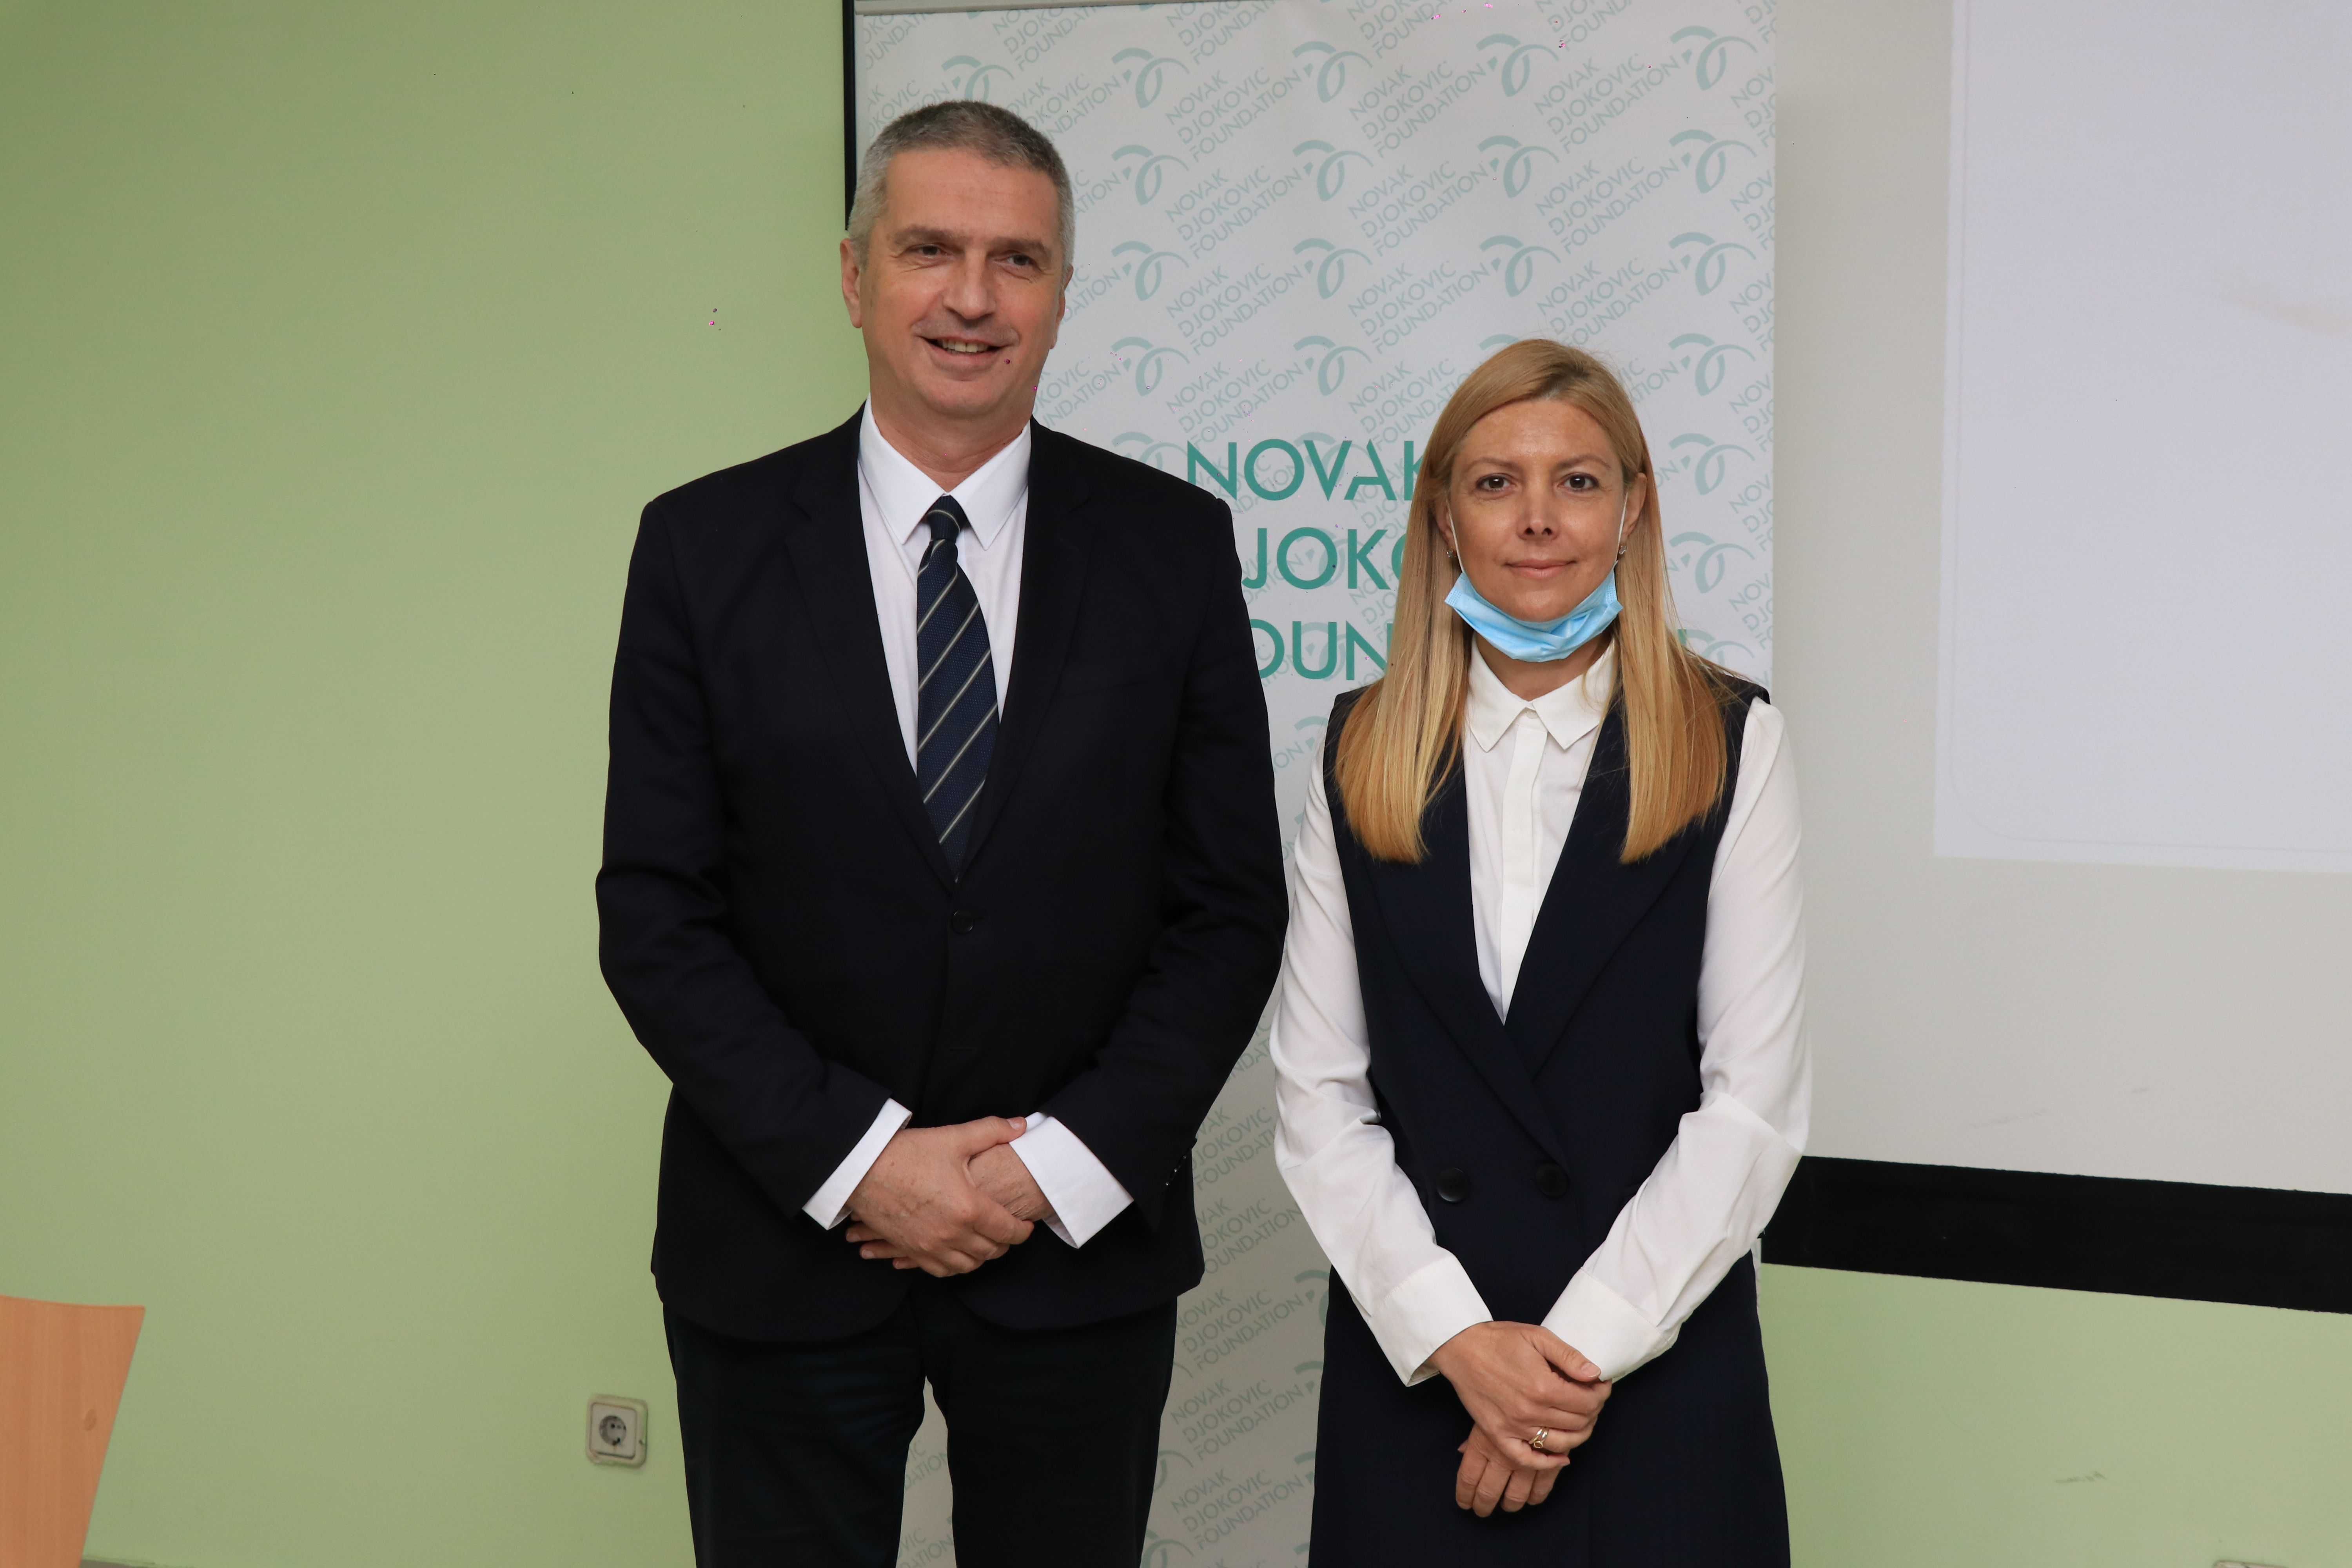 Assistant Professor Dr. Predrag Sazdanovic and Foundation's fundraising manager Emina Potric.